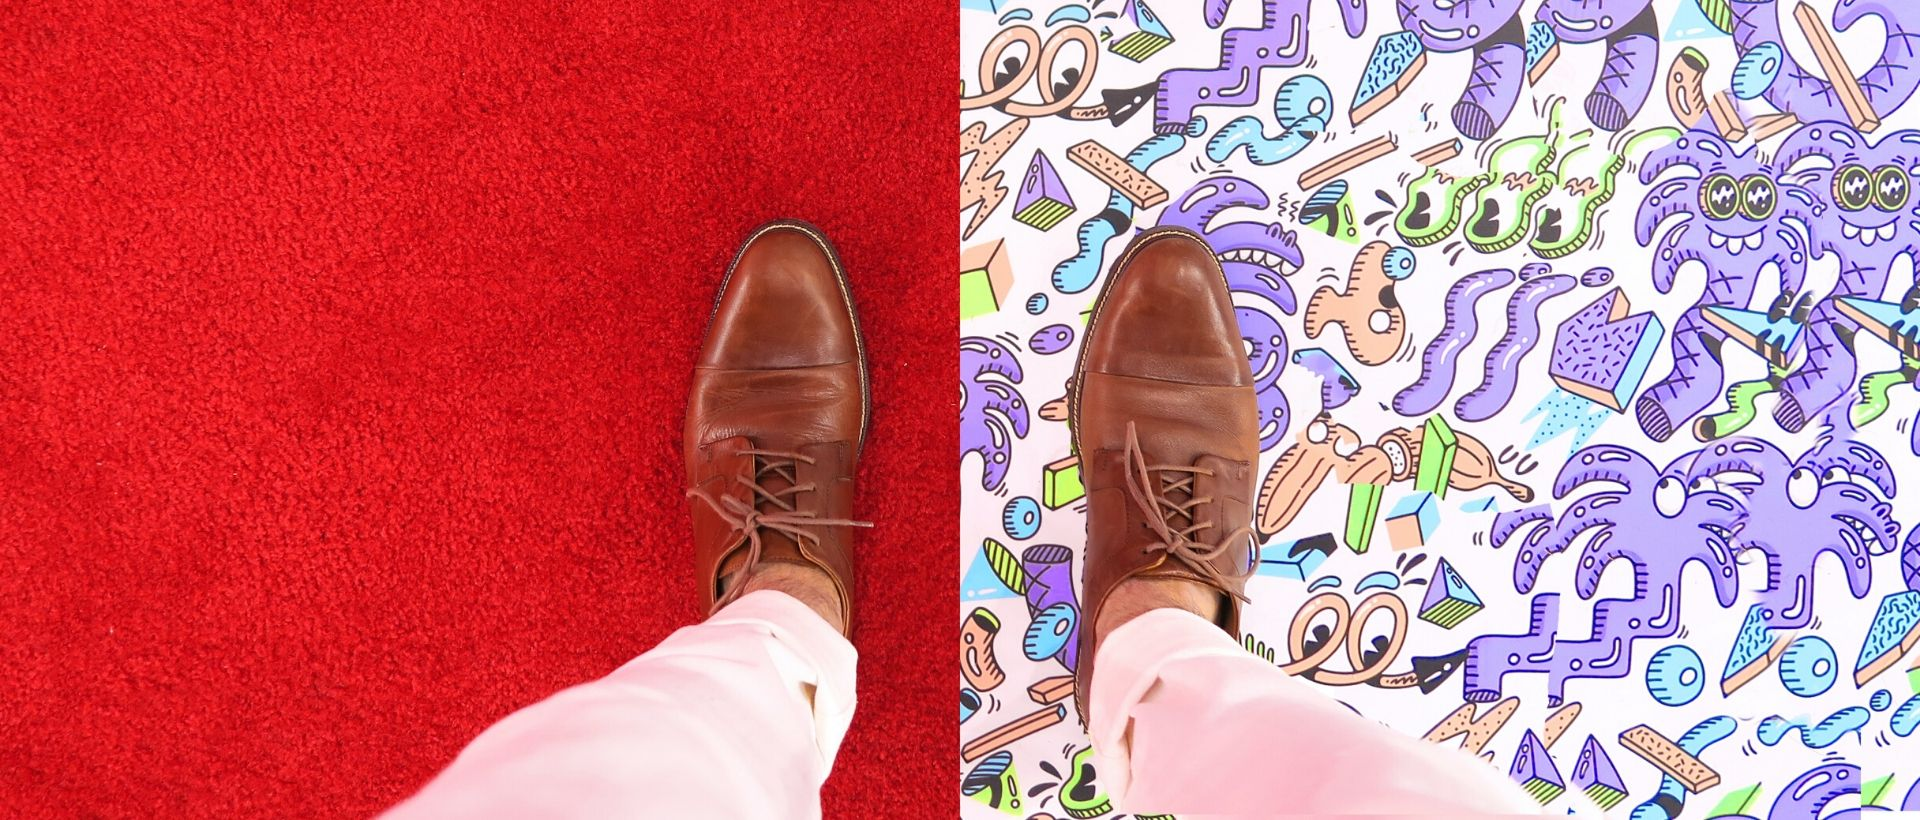 Man wearing brown shoes with one foot on red, one foot on a crazy pattern. Neither side is boring.